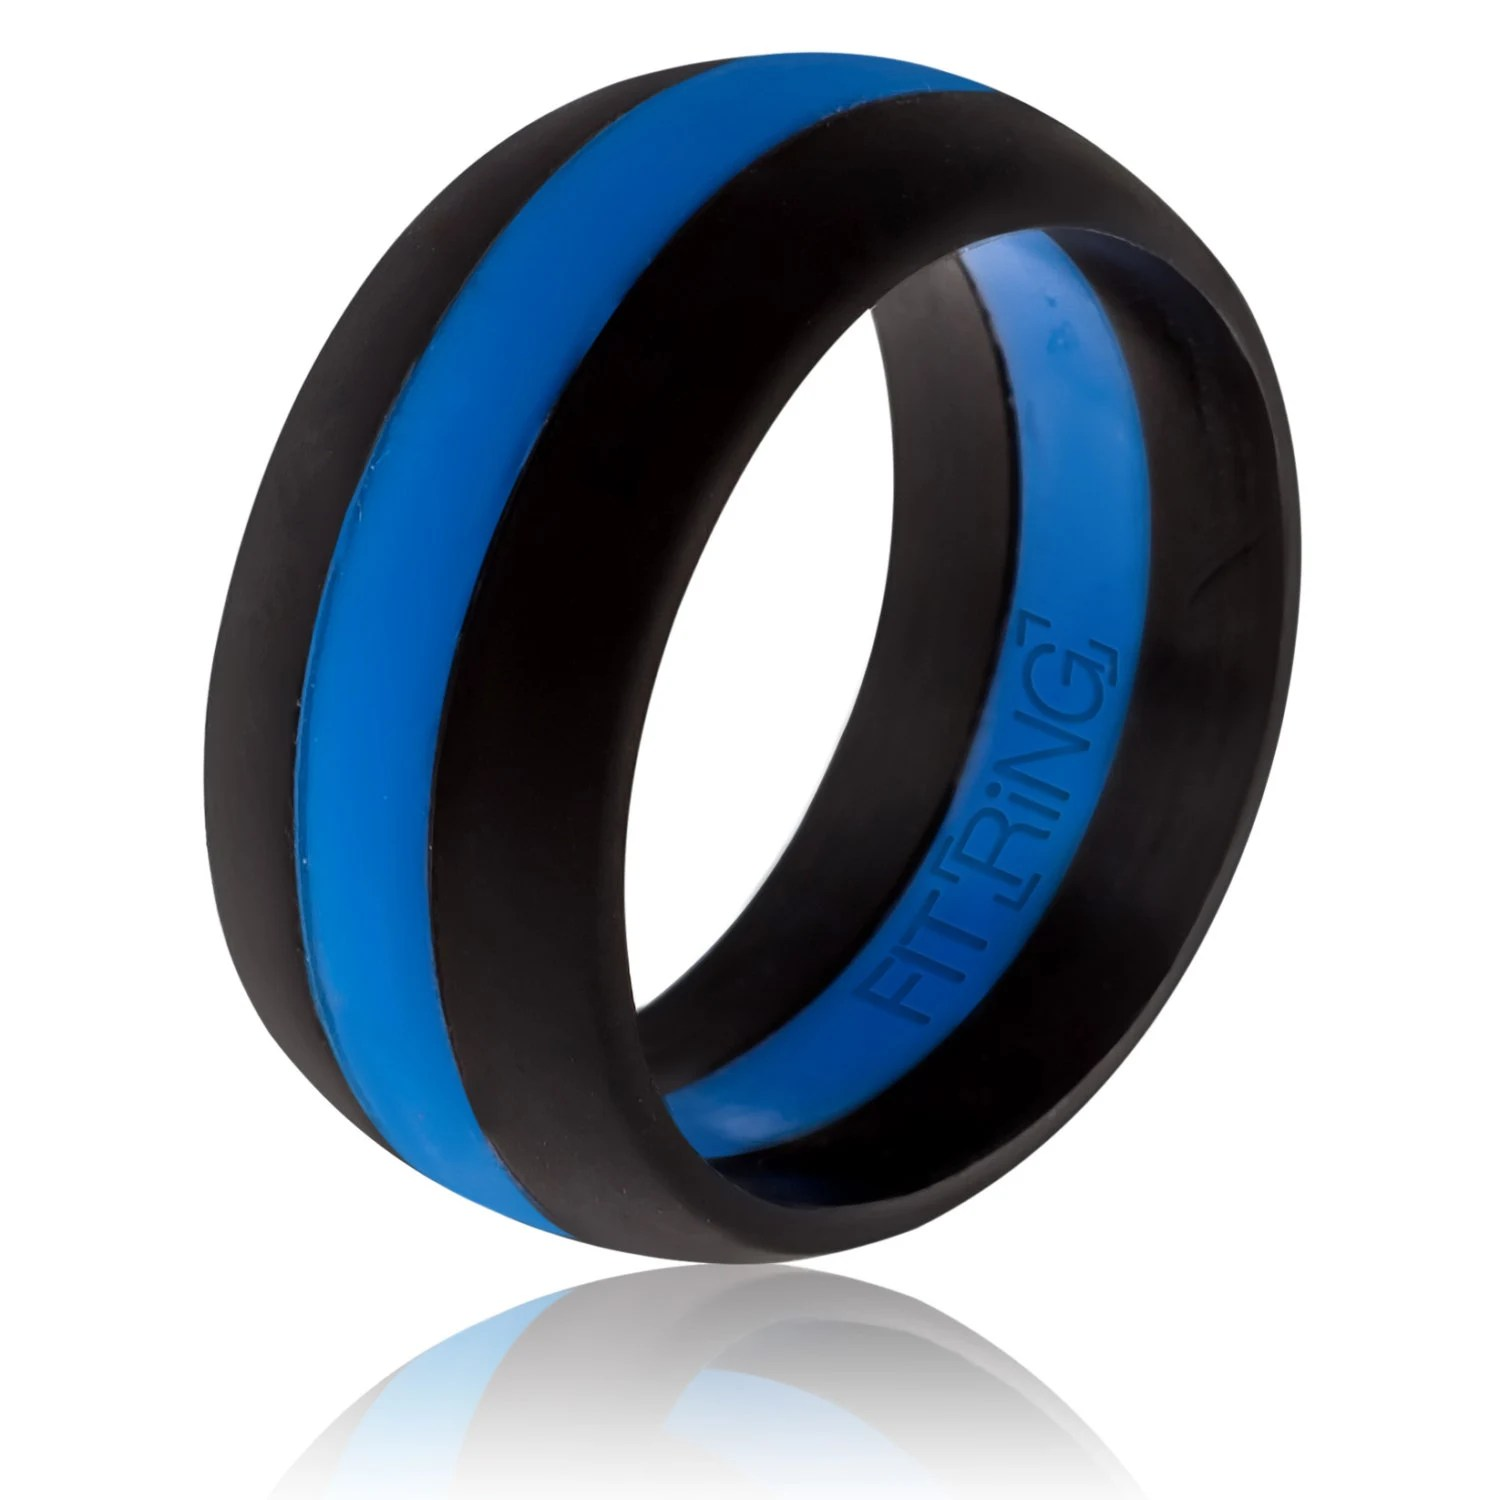 fit ring powered by arthletic mens law enforcement wedding bands Fit Ring Men s Silicone Wedding Ring Thin Blue Line Powered by Arthletic Law Enforcement Silicone Wedding Band Police Safe Rings